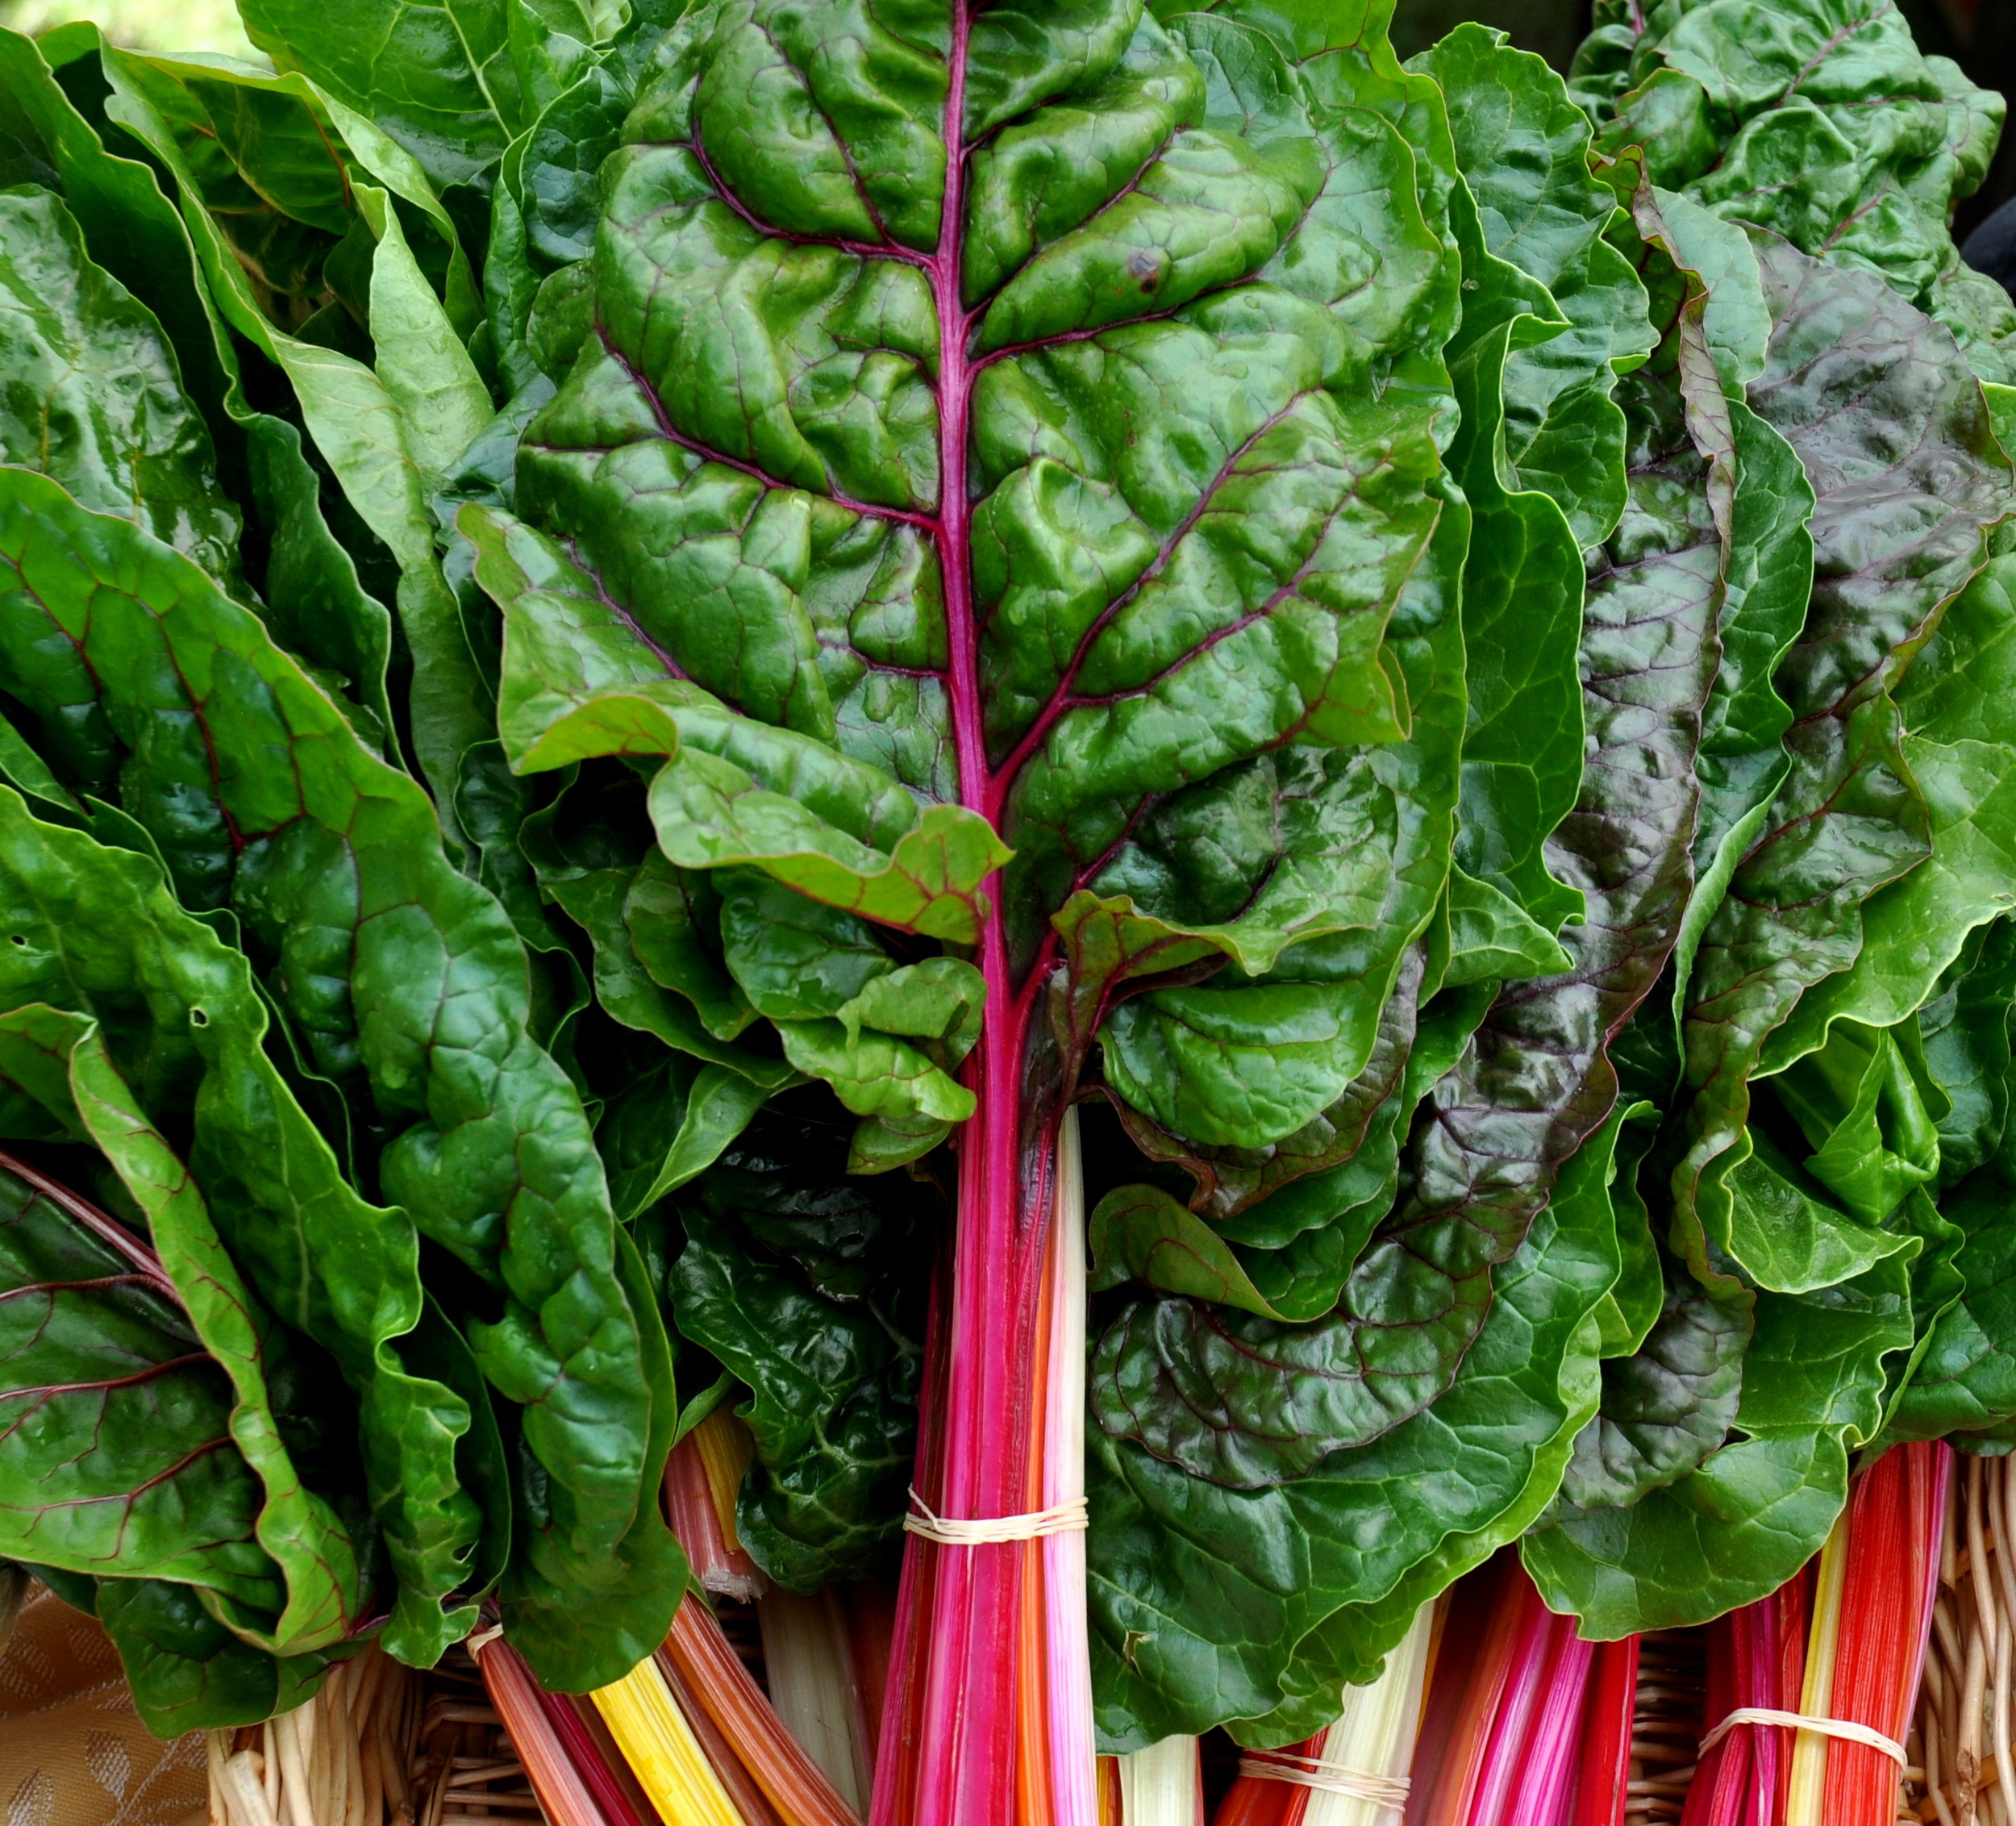 Rainbow chard from Seattle Youth Garden Works. Photo copyright 2014 by Zachary D. Lyons.